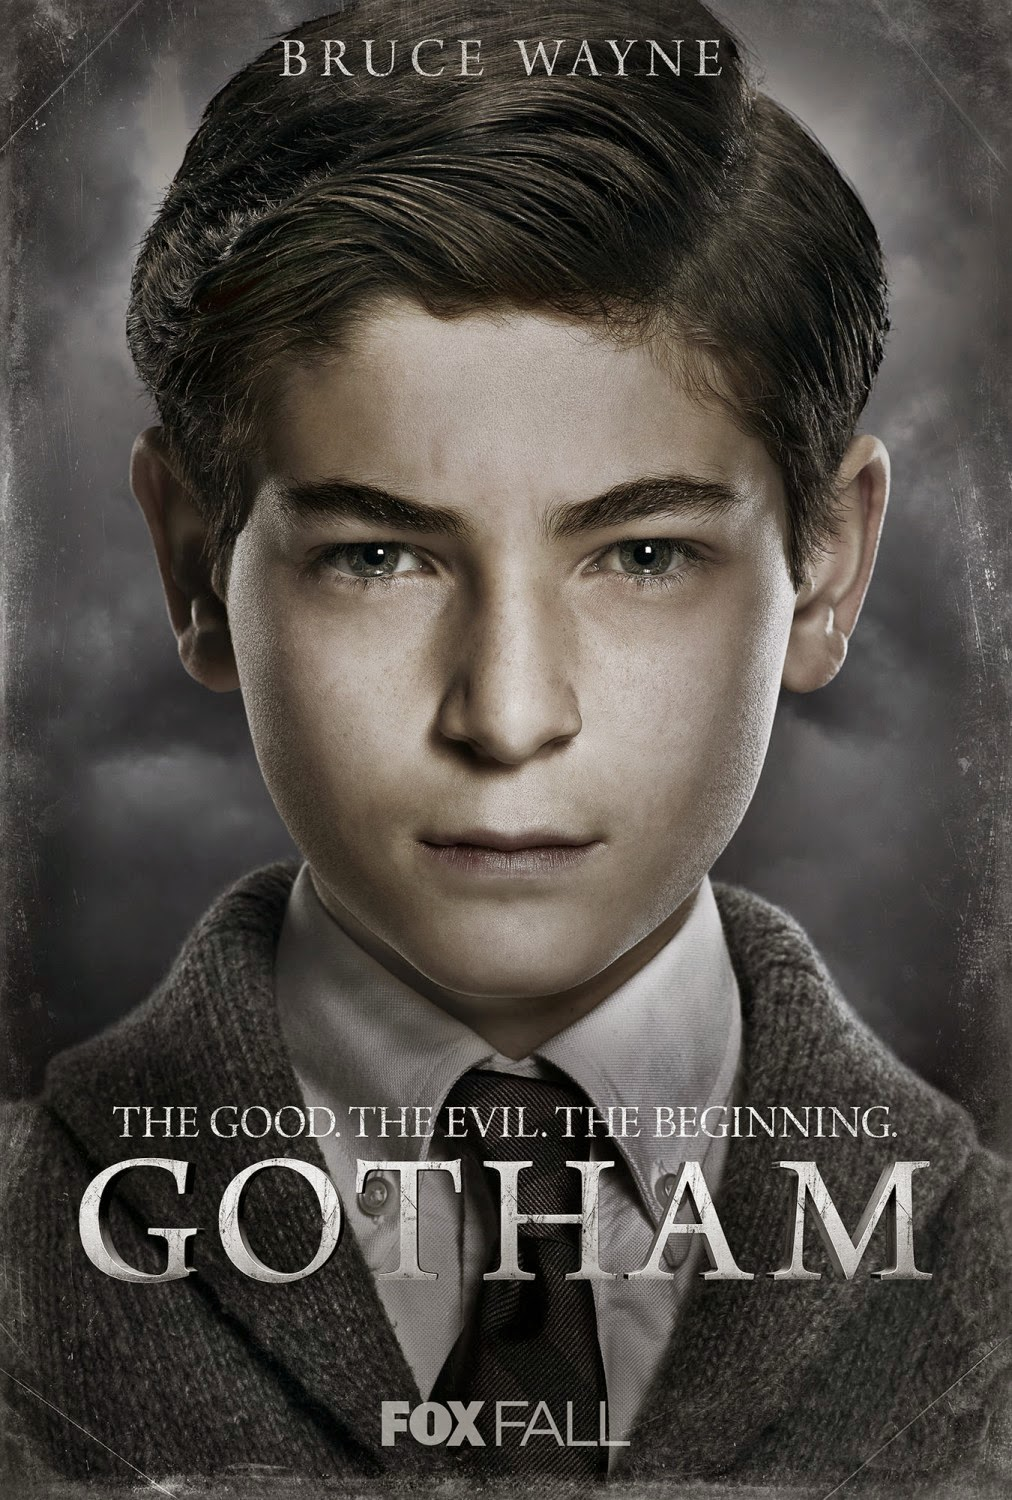 "Gotham ""The Good. The Evil. The Beginning."" Character TV Poster Set - David Mazouz as Bruce Wayne"